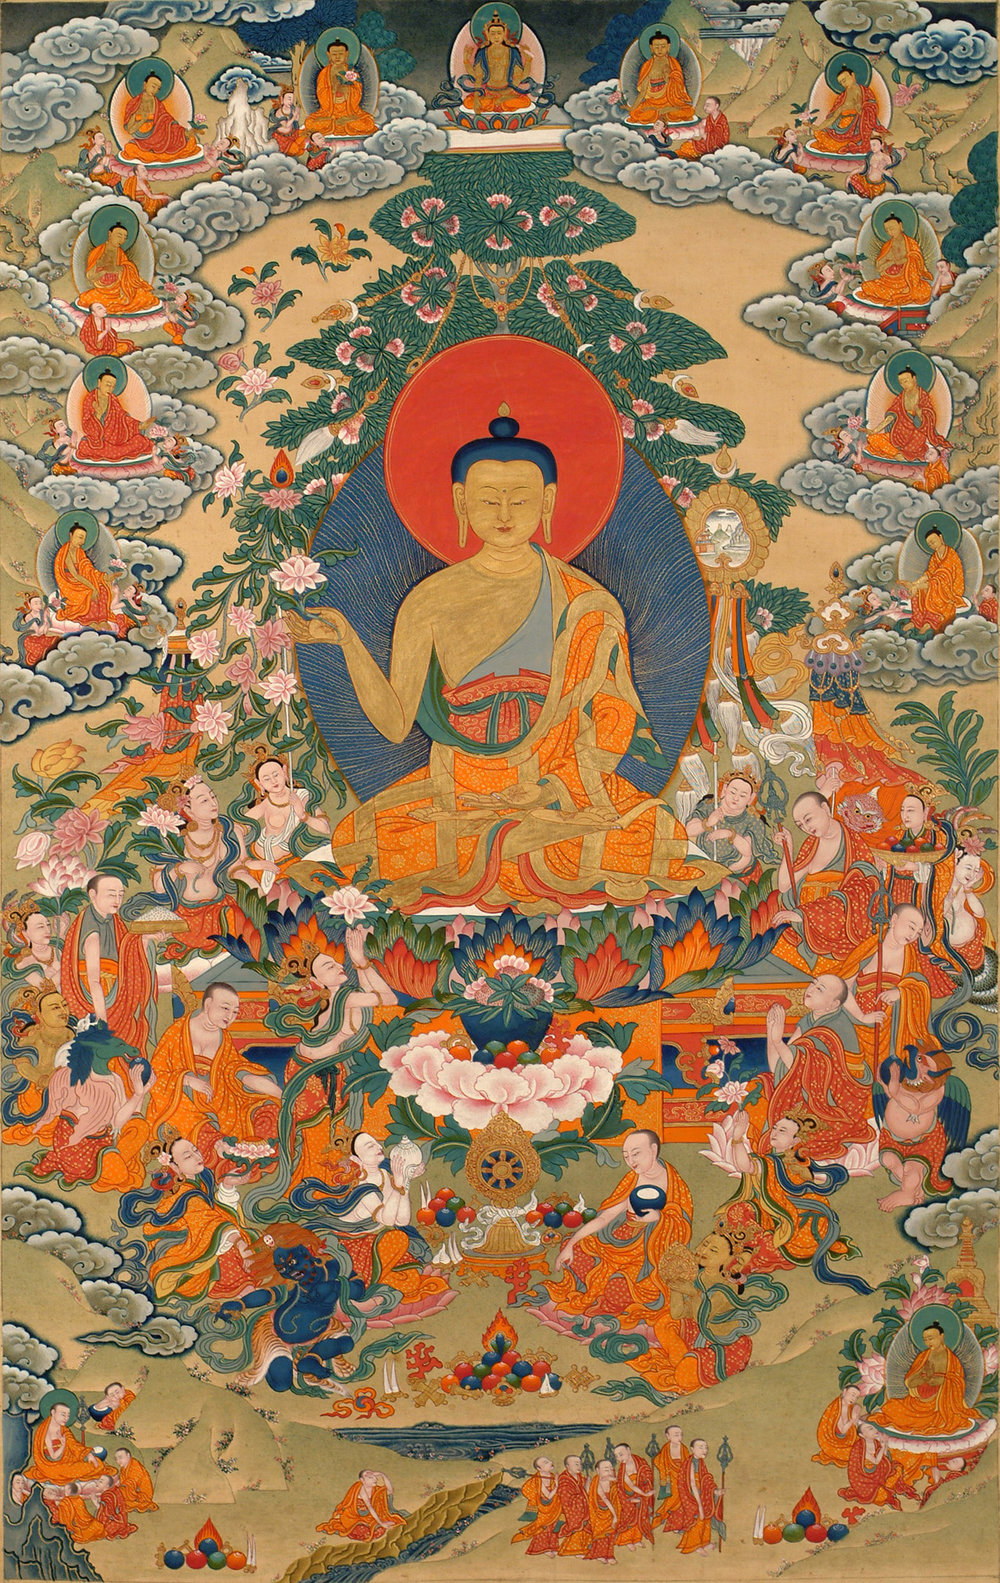 The Three Turnings of the Wheel of Dharma